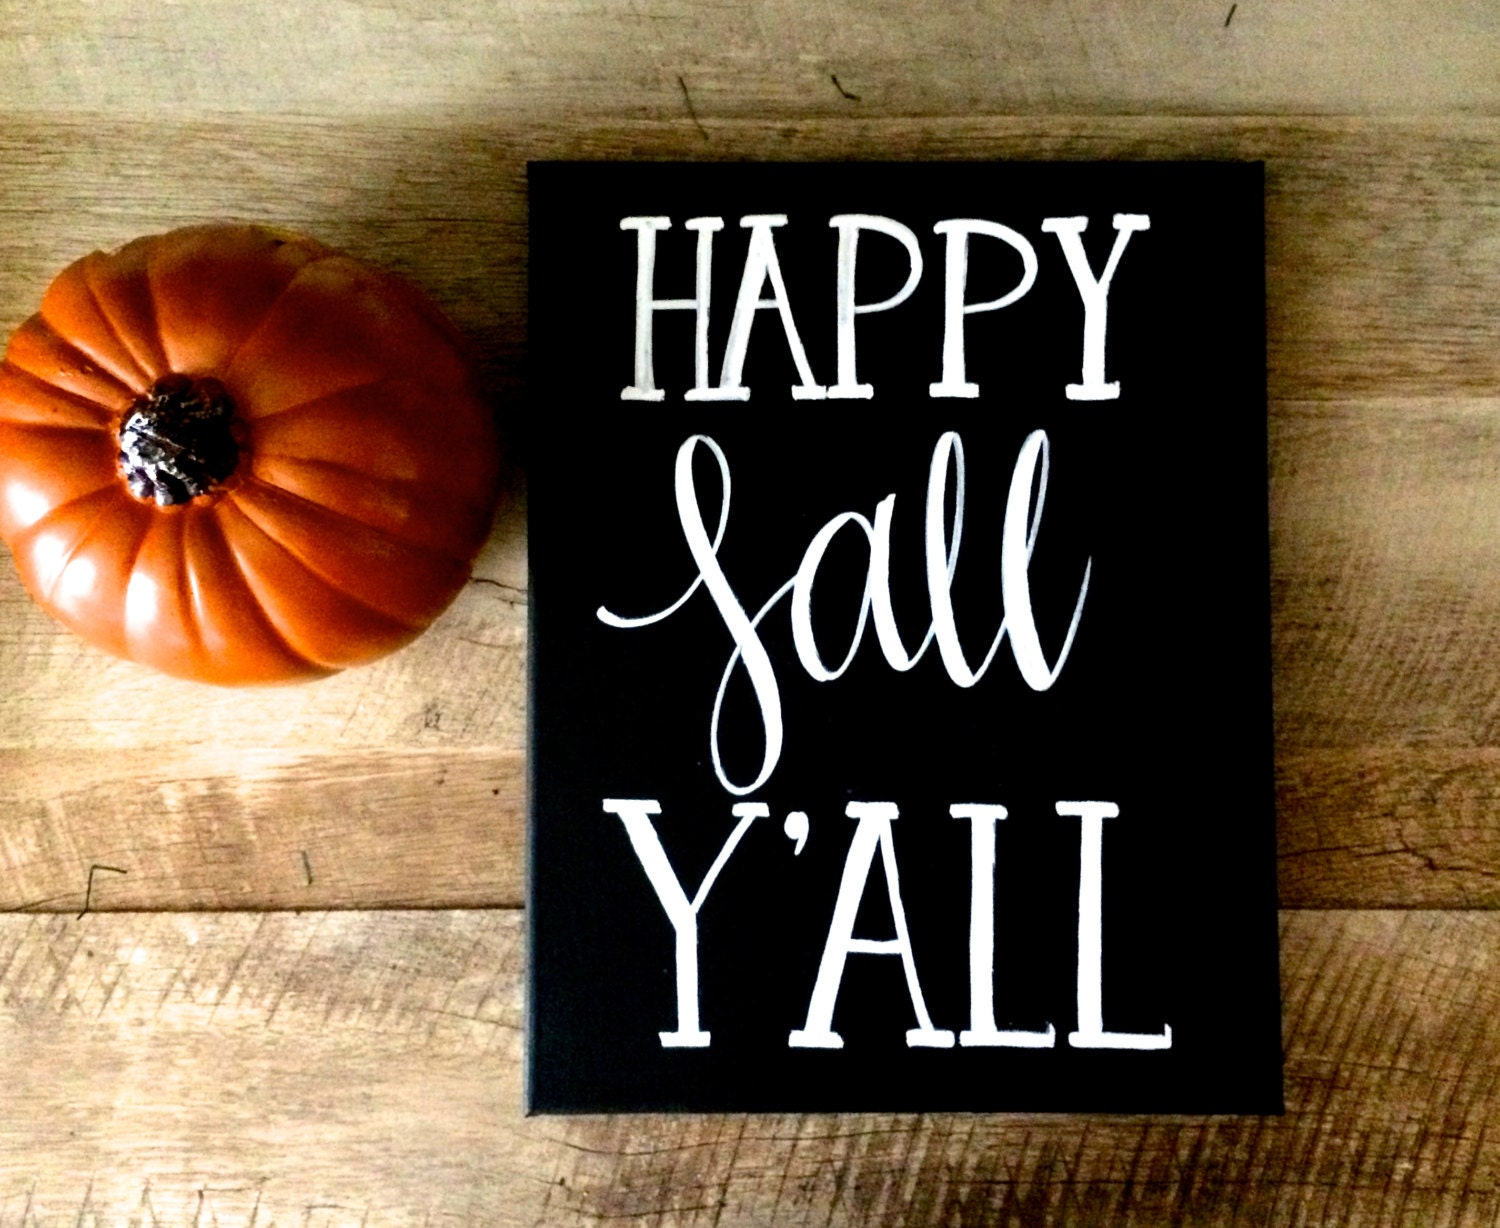 It's just an image of Adaptable Happy Fall Yall Printable